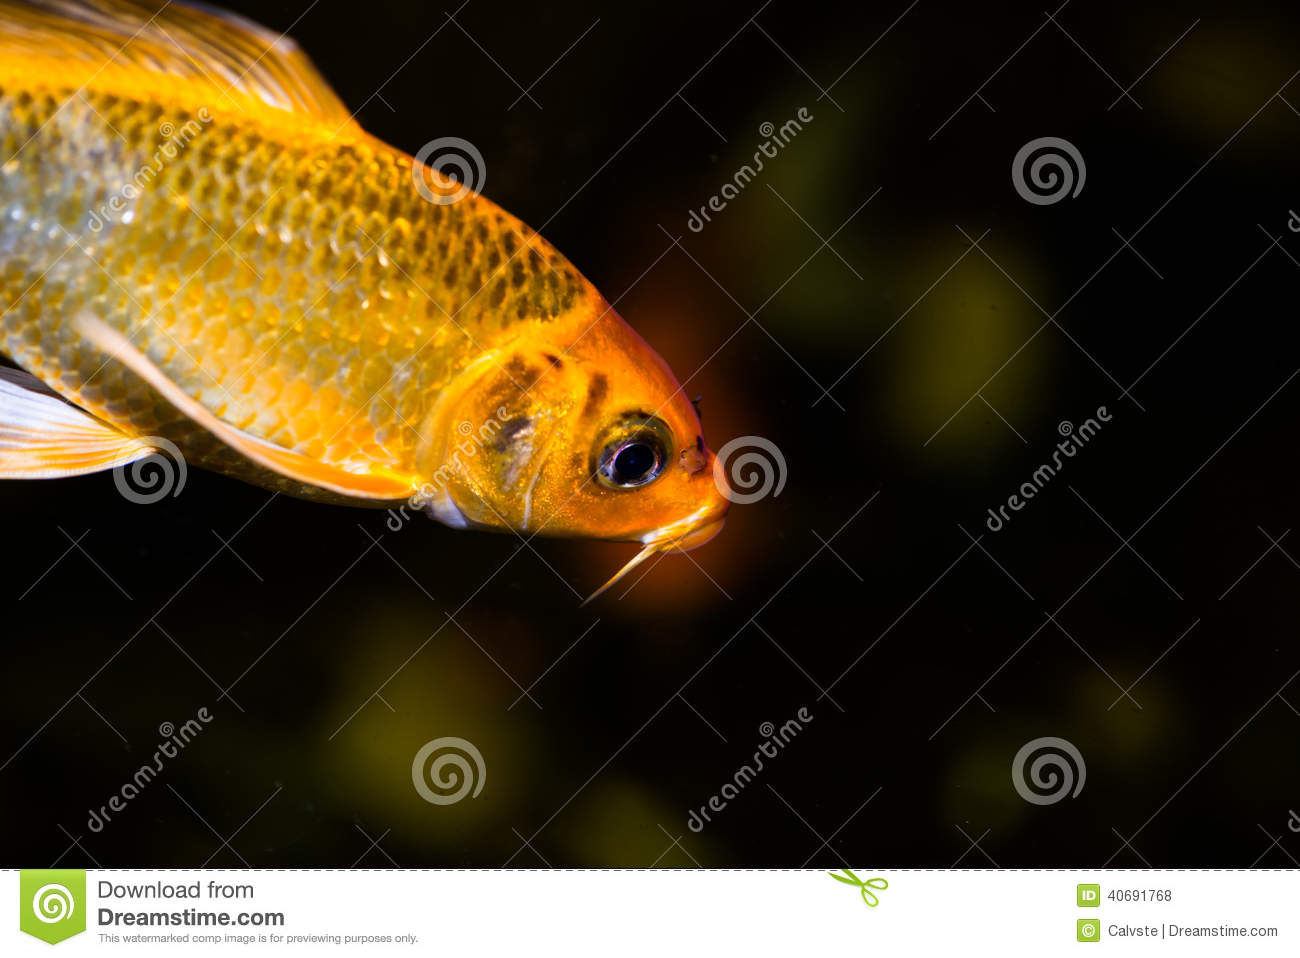 Koi fish in an aquarium stock photo image of aspirations for Koi fish aquarium